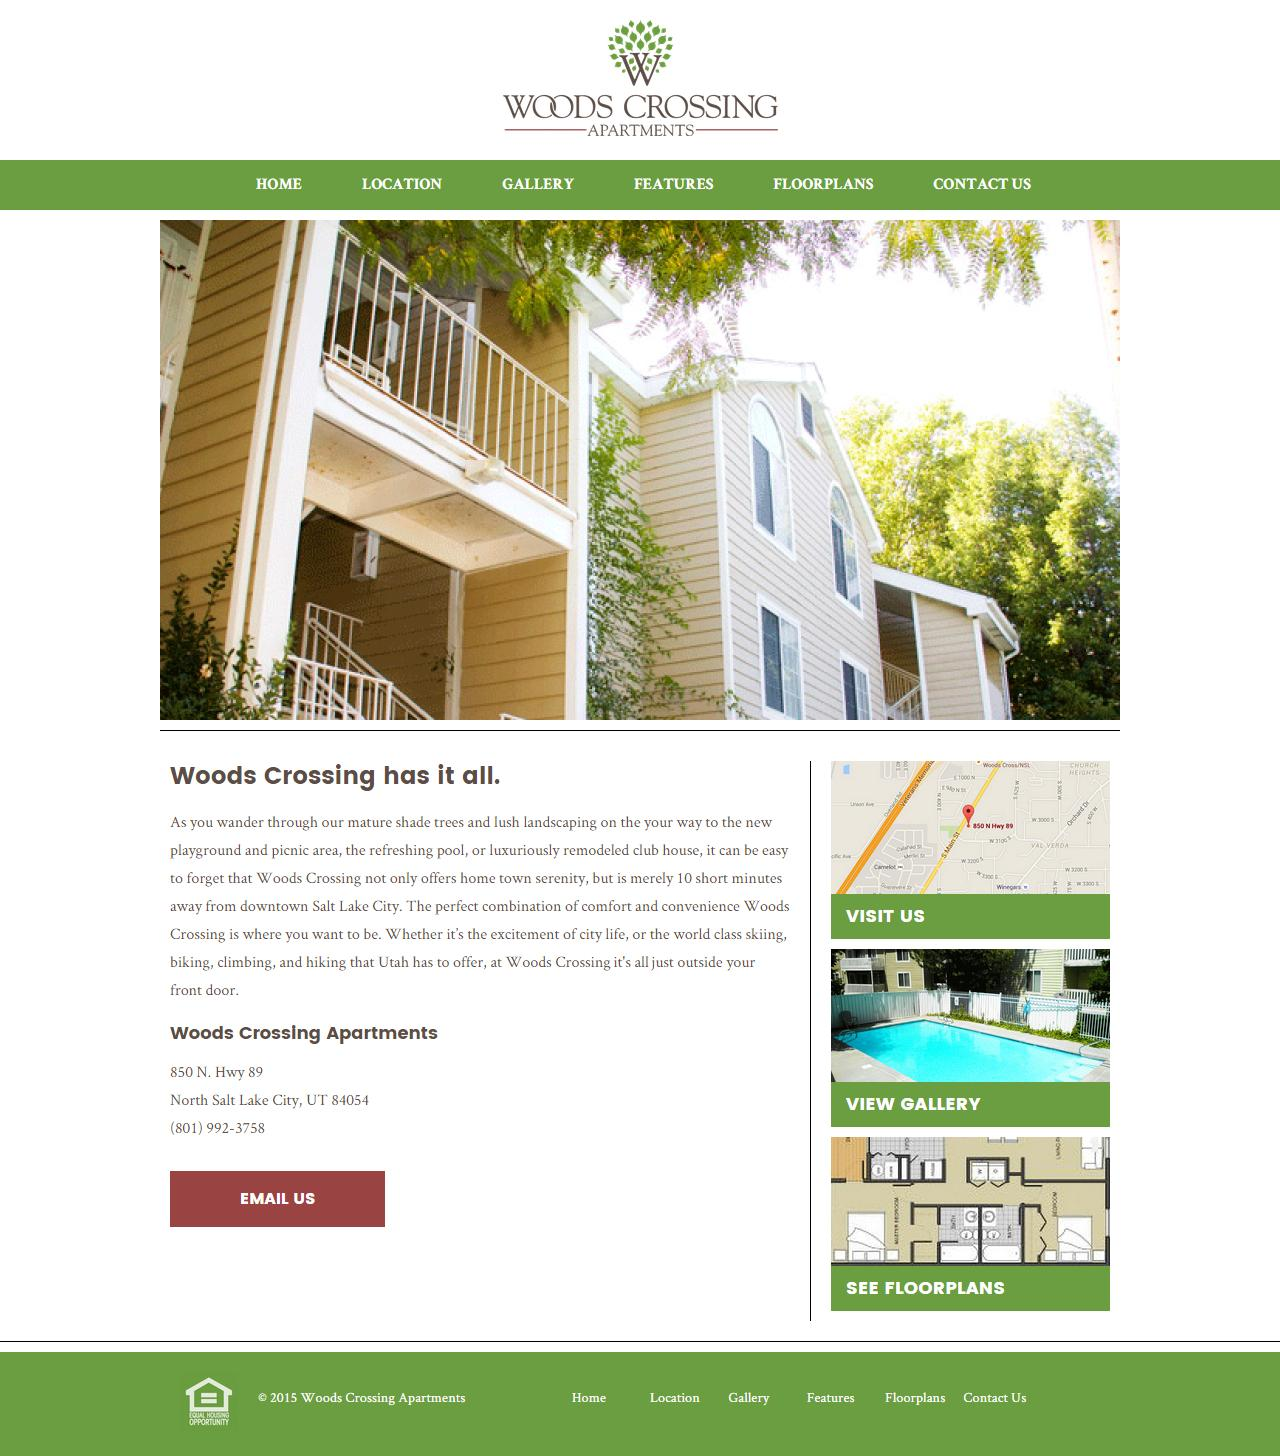 Towson Woods Apartments: Woods Crossing Apartments